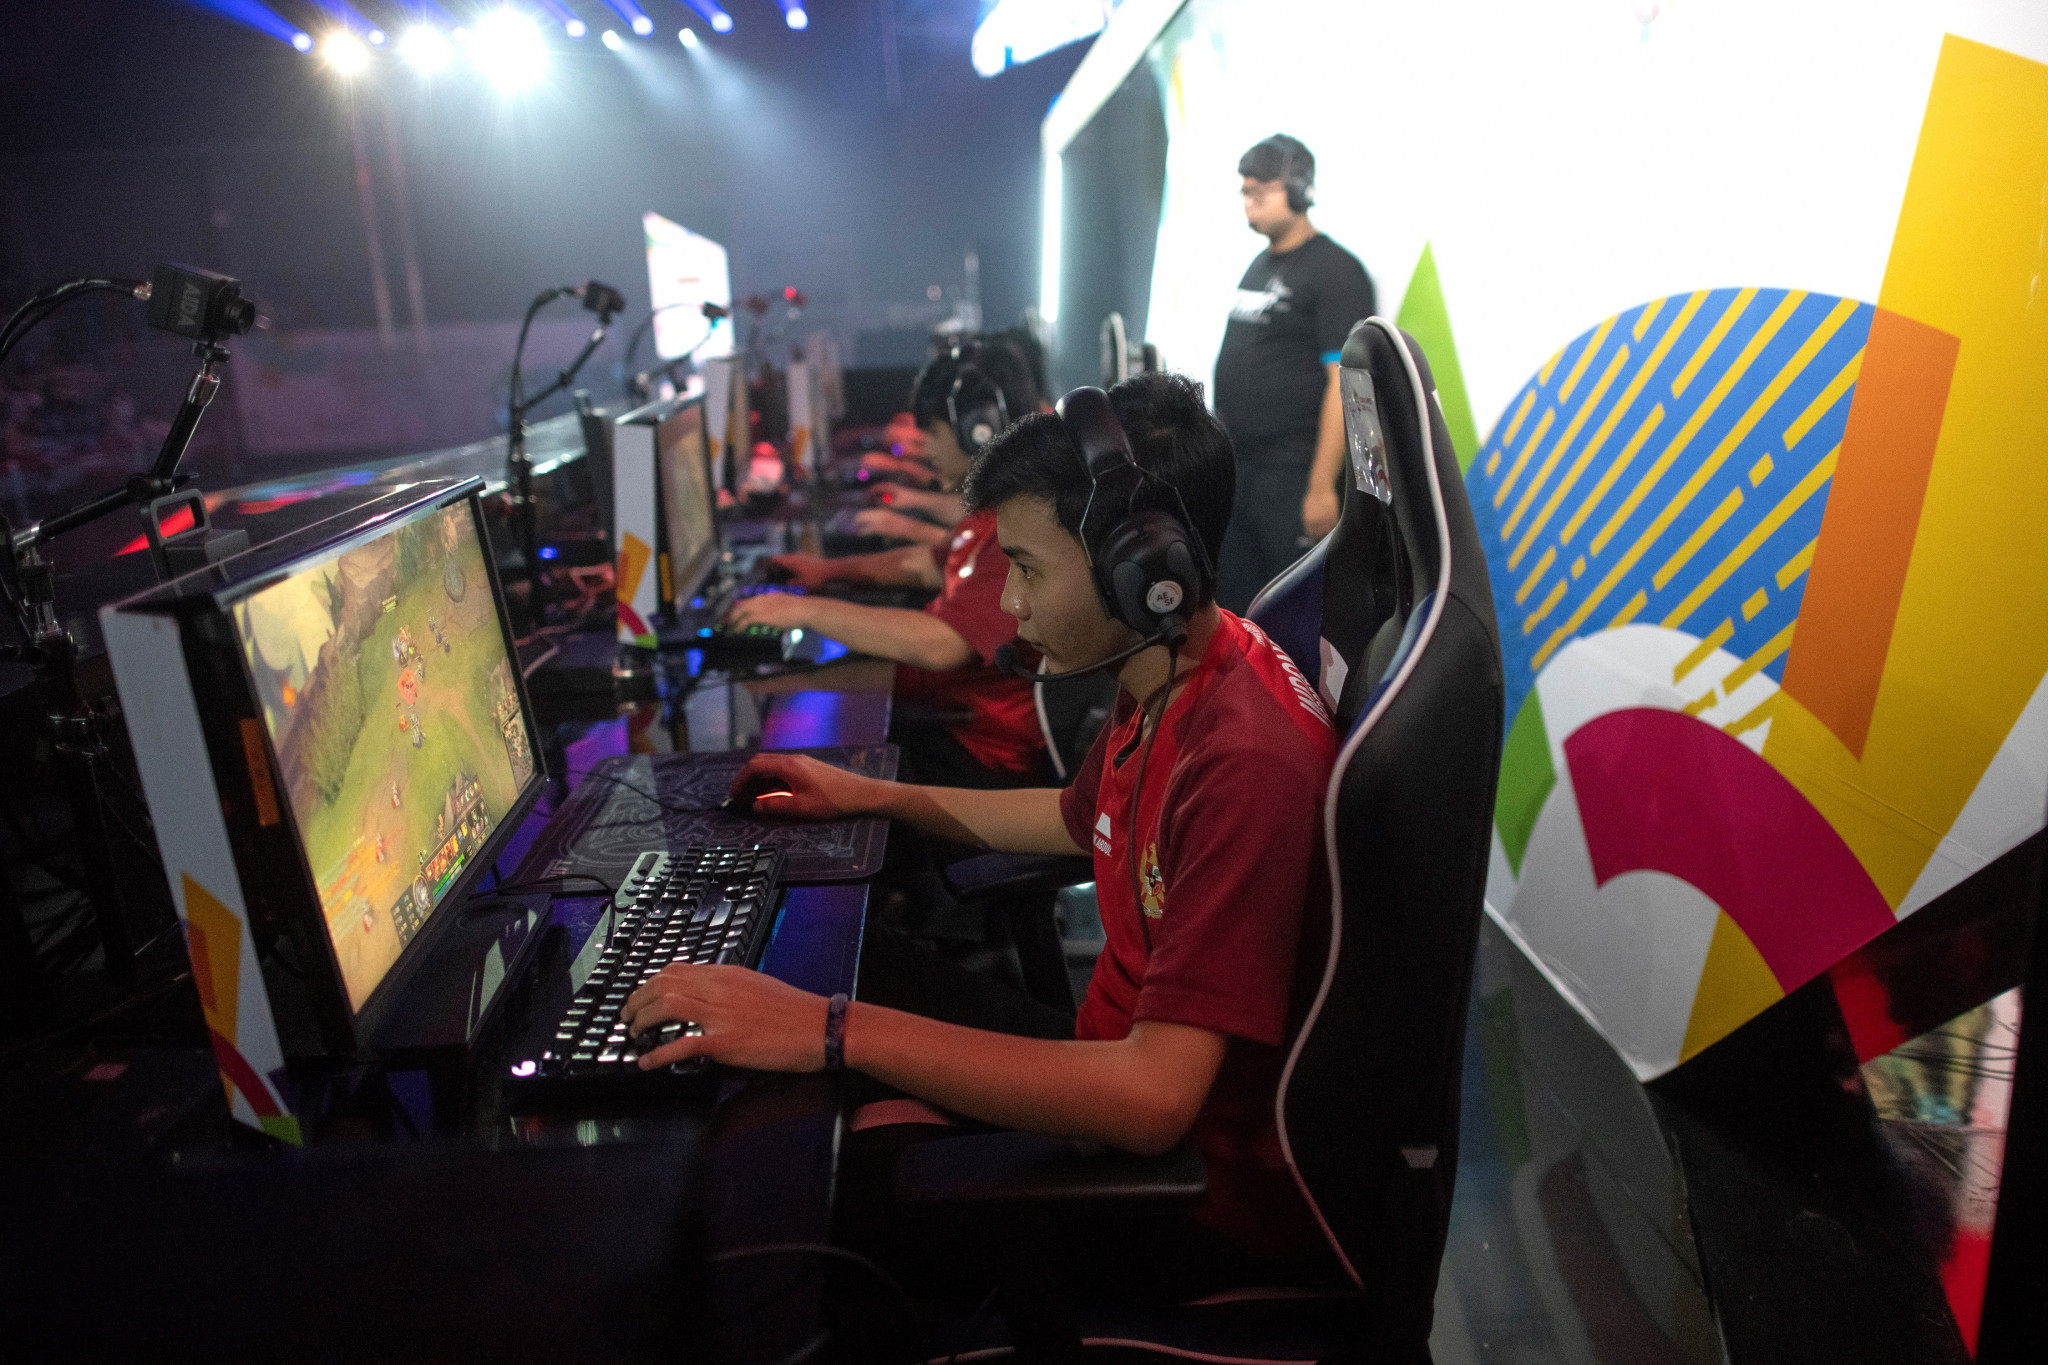 The appearance of esports as a demonstration event at Jakarta Palembang 2018 is seen as an important step forward as the sport looks one day to join the Olympic programme ©GettyImages